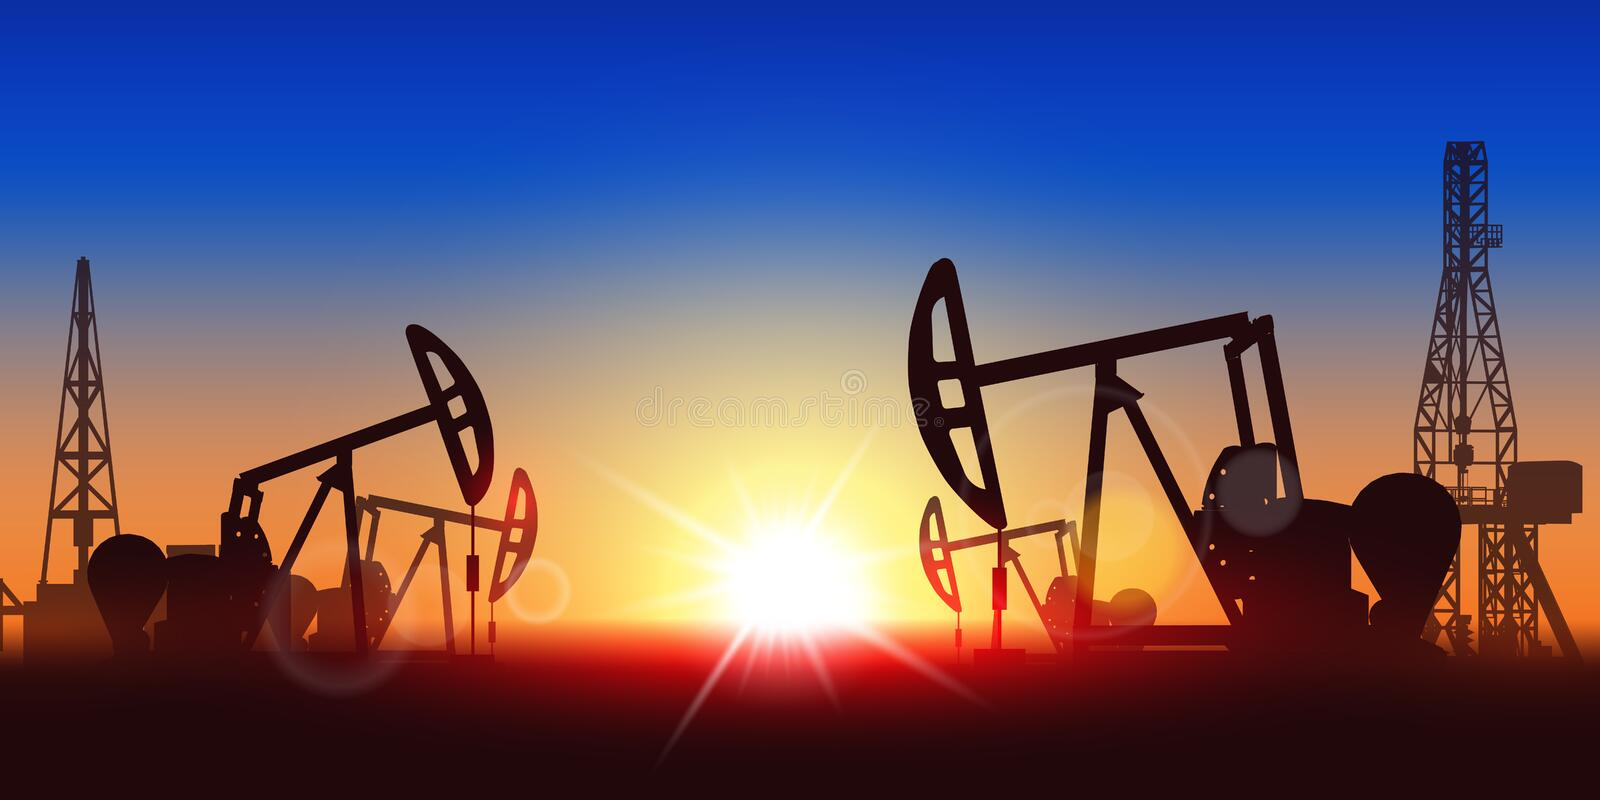 Creative vector illustration of oil pump industry silhouette, field pumpjack, rig drill over sunset isolated on vector illustration